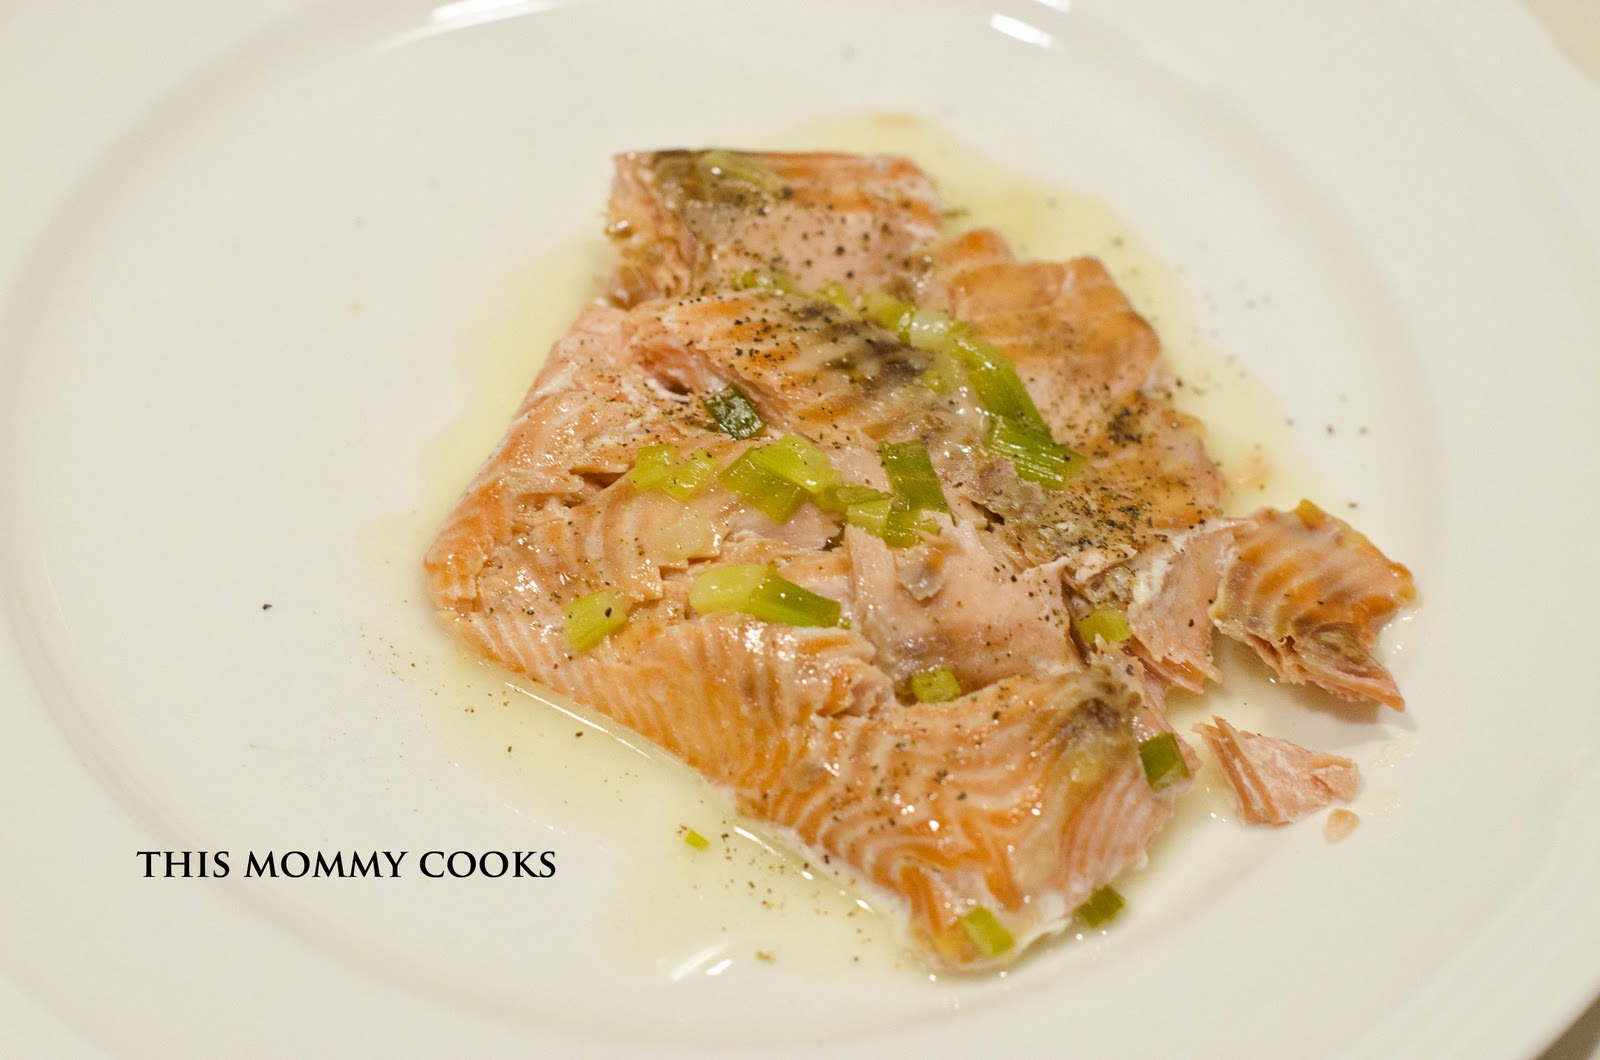 This Mommy Cooks: Roasted Salmon with White Wine Sauce